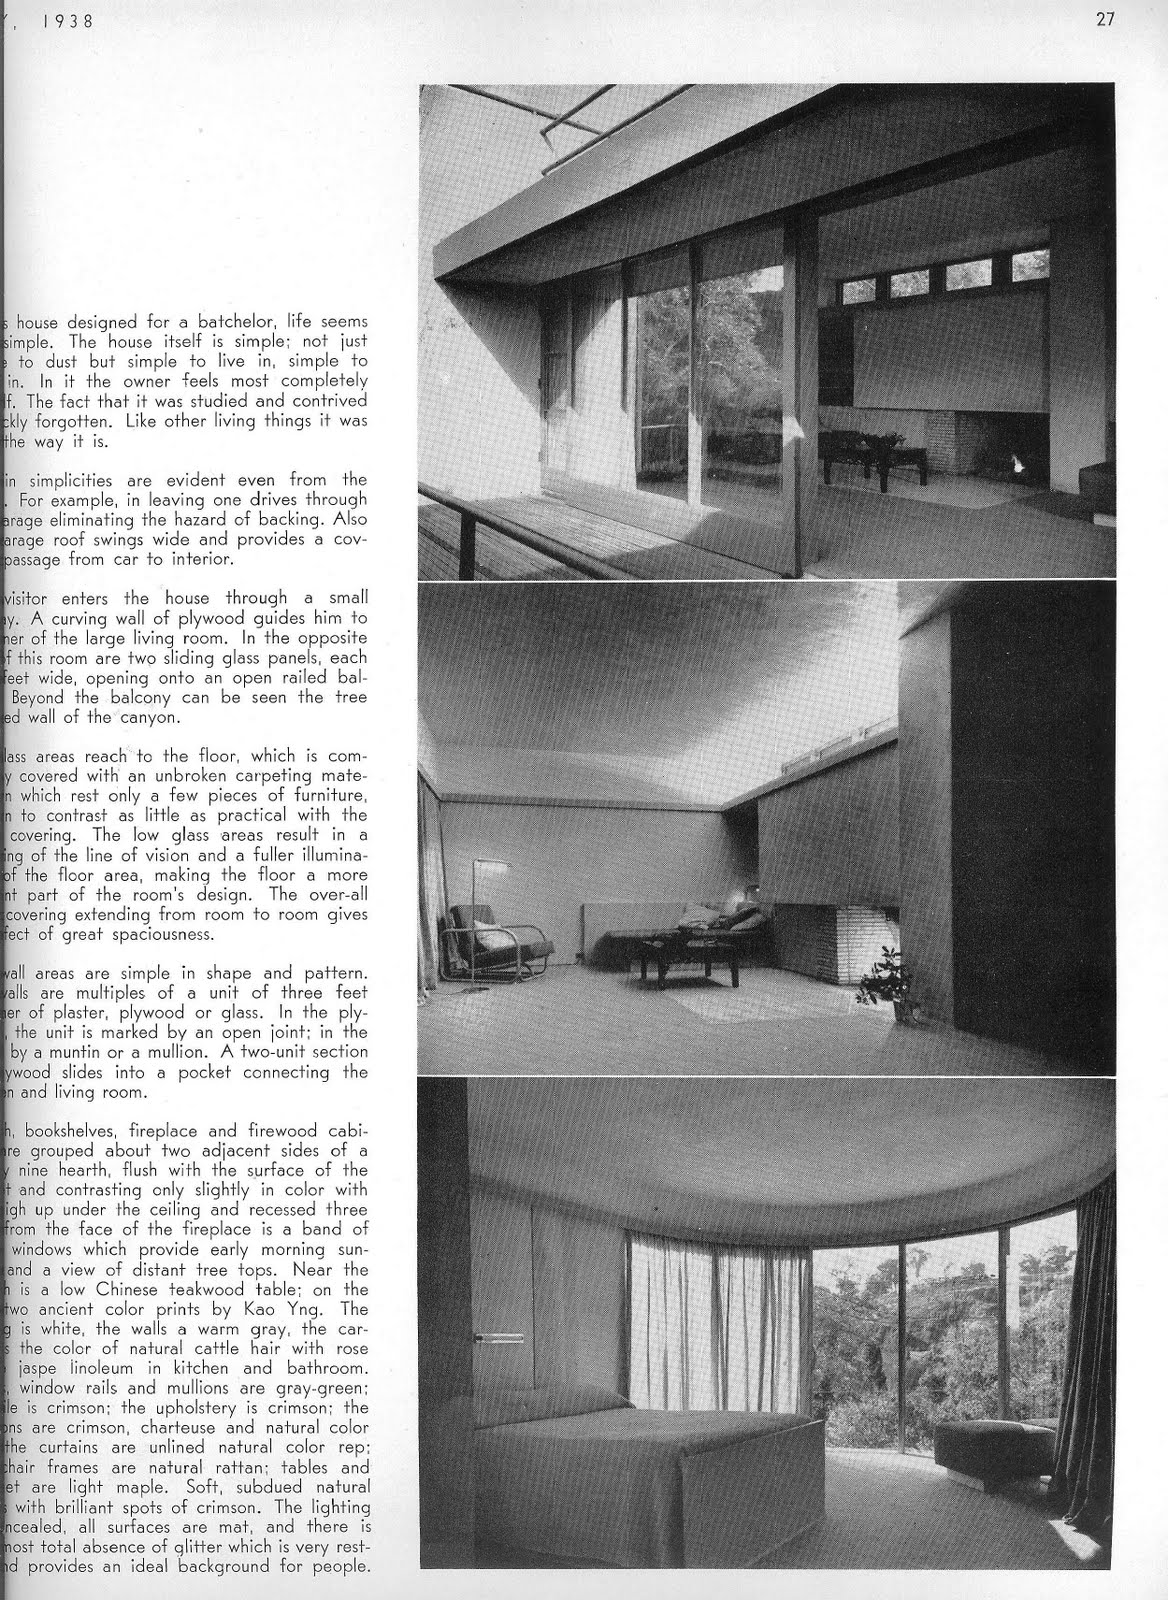 The Completed Entenza House Made Its CAA Debut In May 1938 Issue See Above Left And Right From My Collection